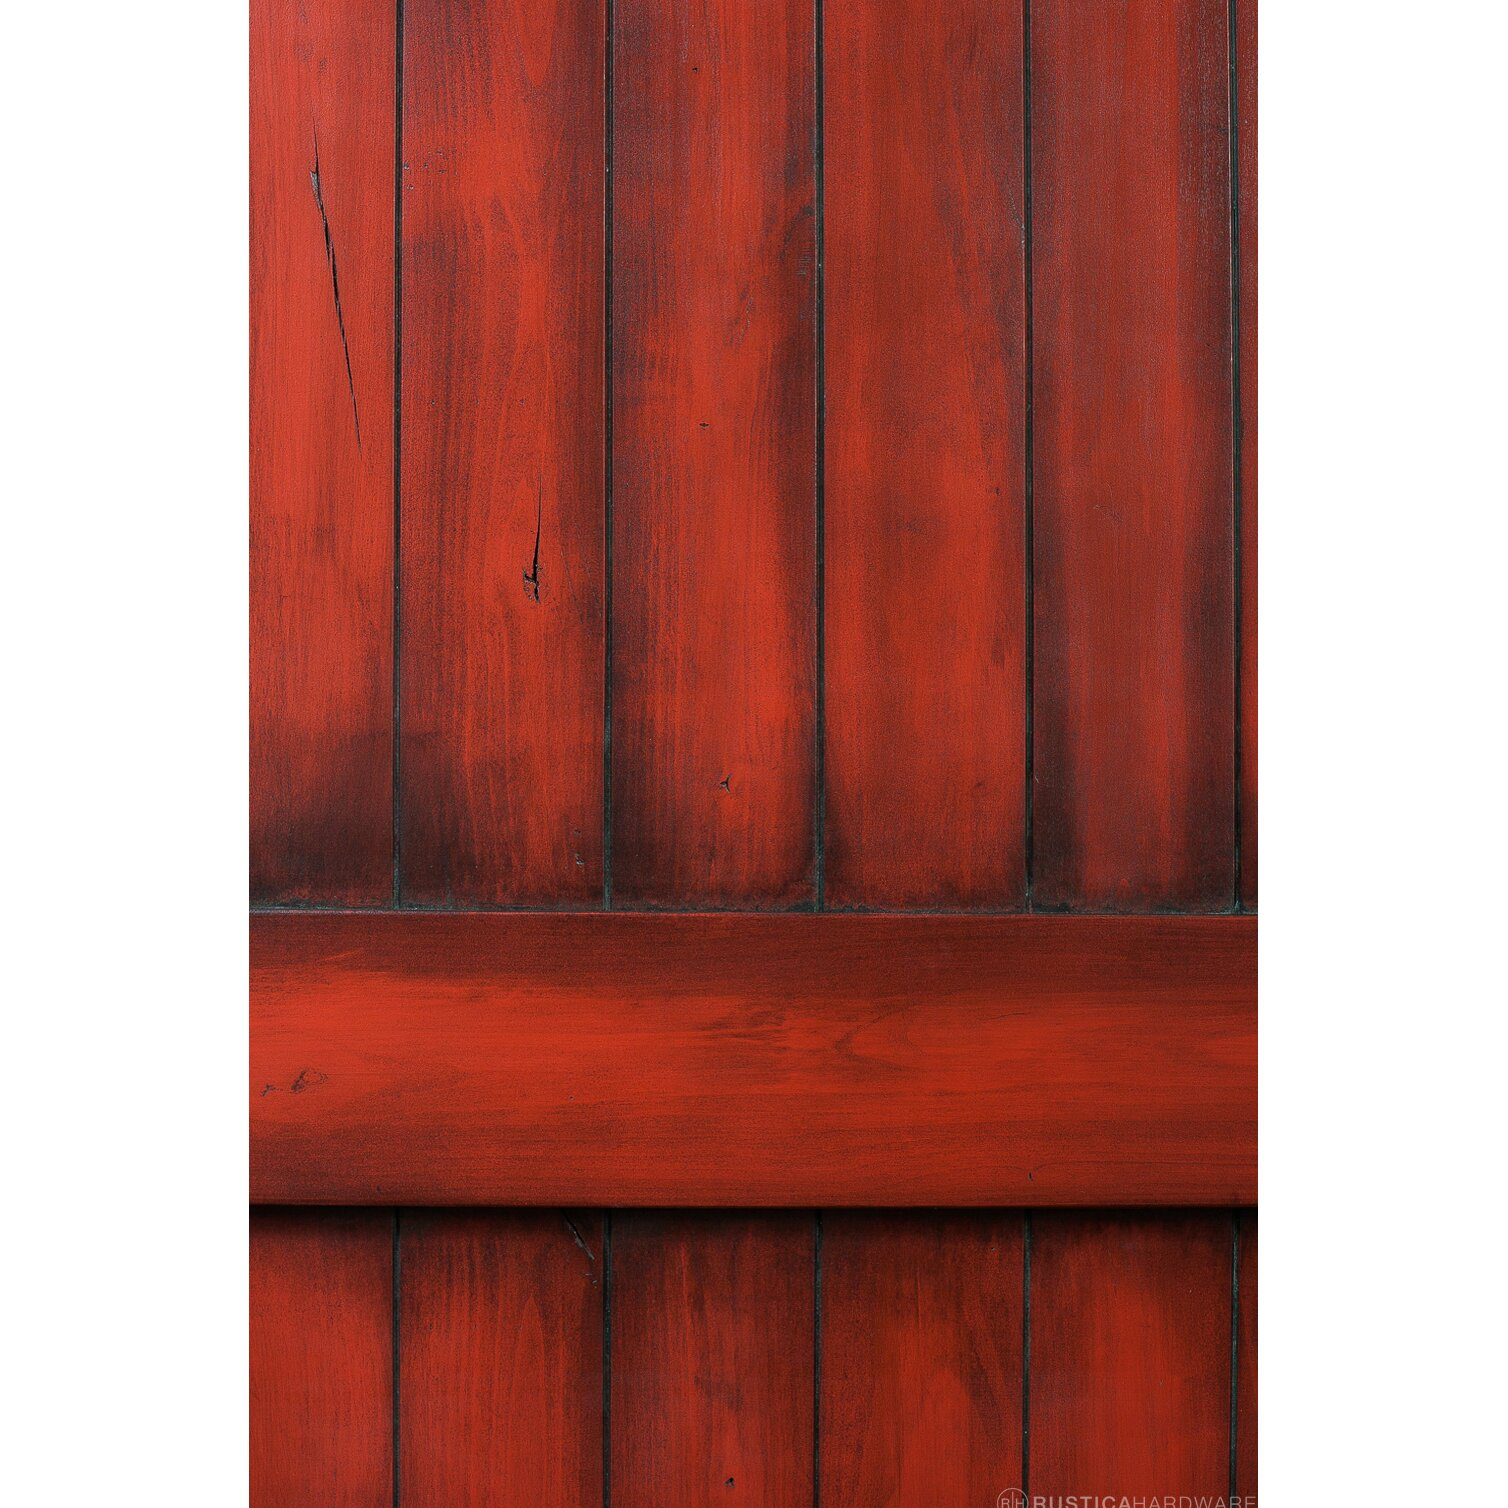 Rusticahardware Ranch Wood 1 Panel Stained Sliding Barn